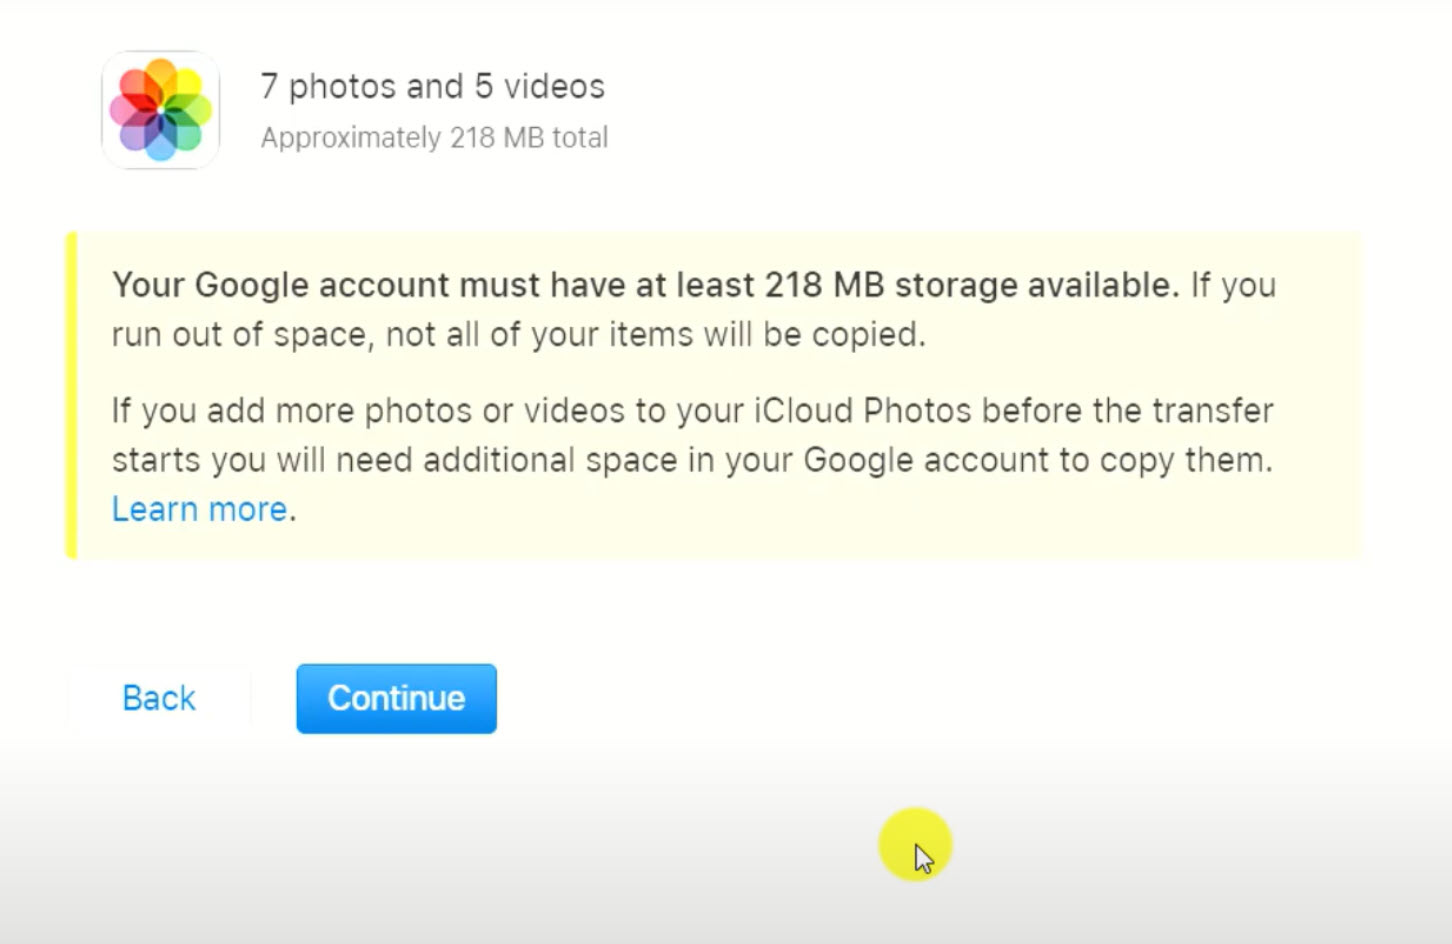 warning messaging confirming storage availability on Google photos